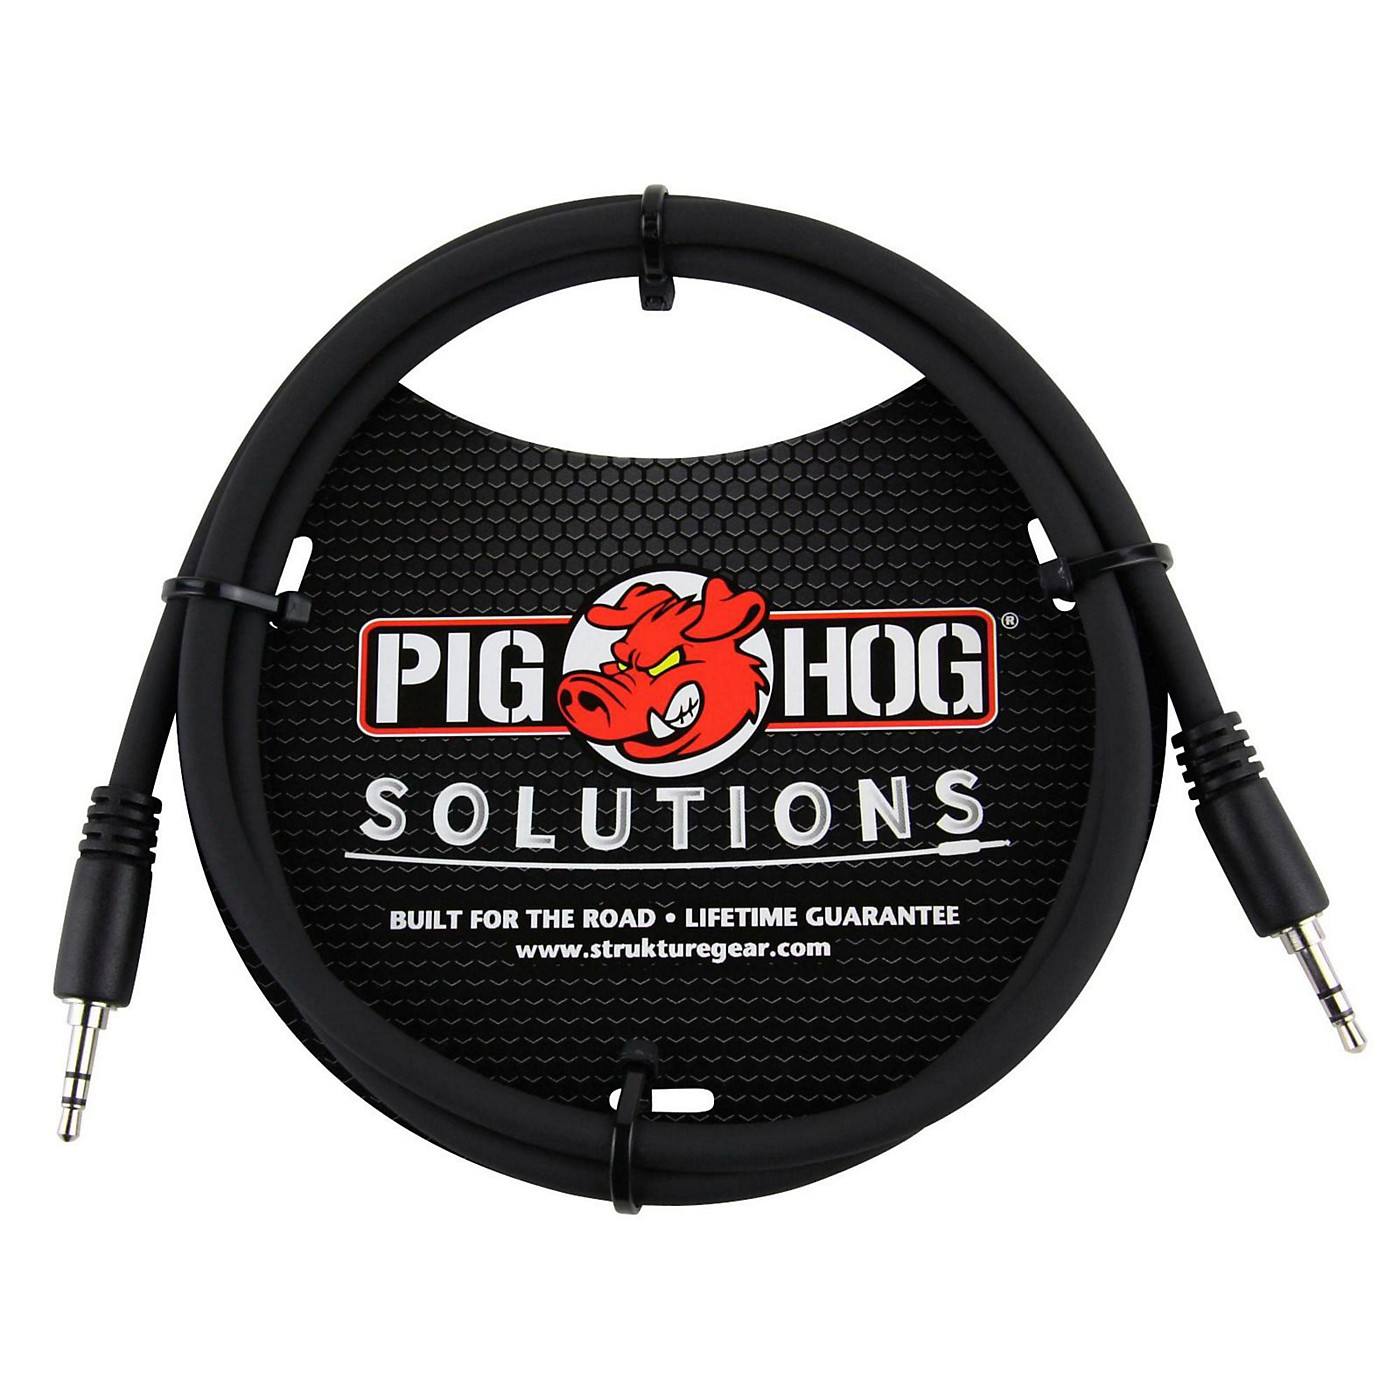 Pig Hog Solutions 3.5mm TRS to 3.5mm TRS Adapter Cable thumbnail